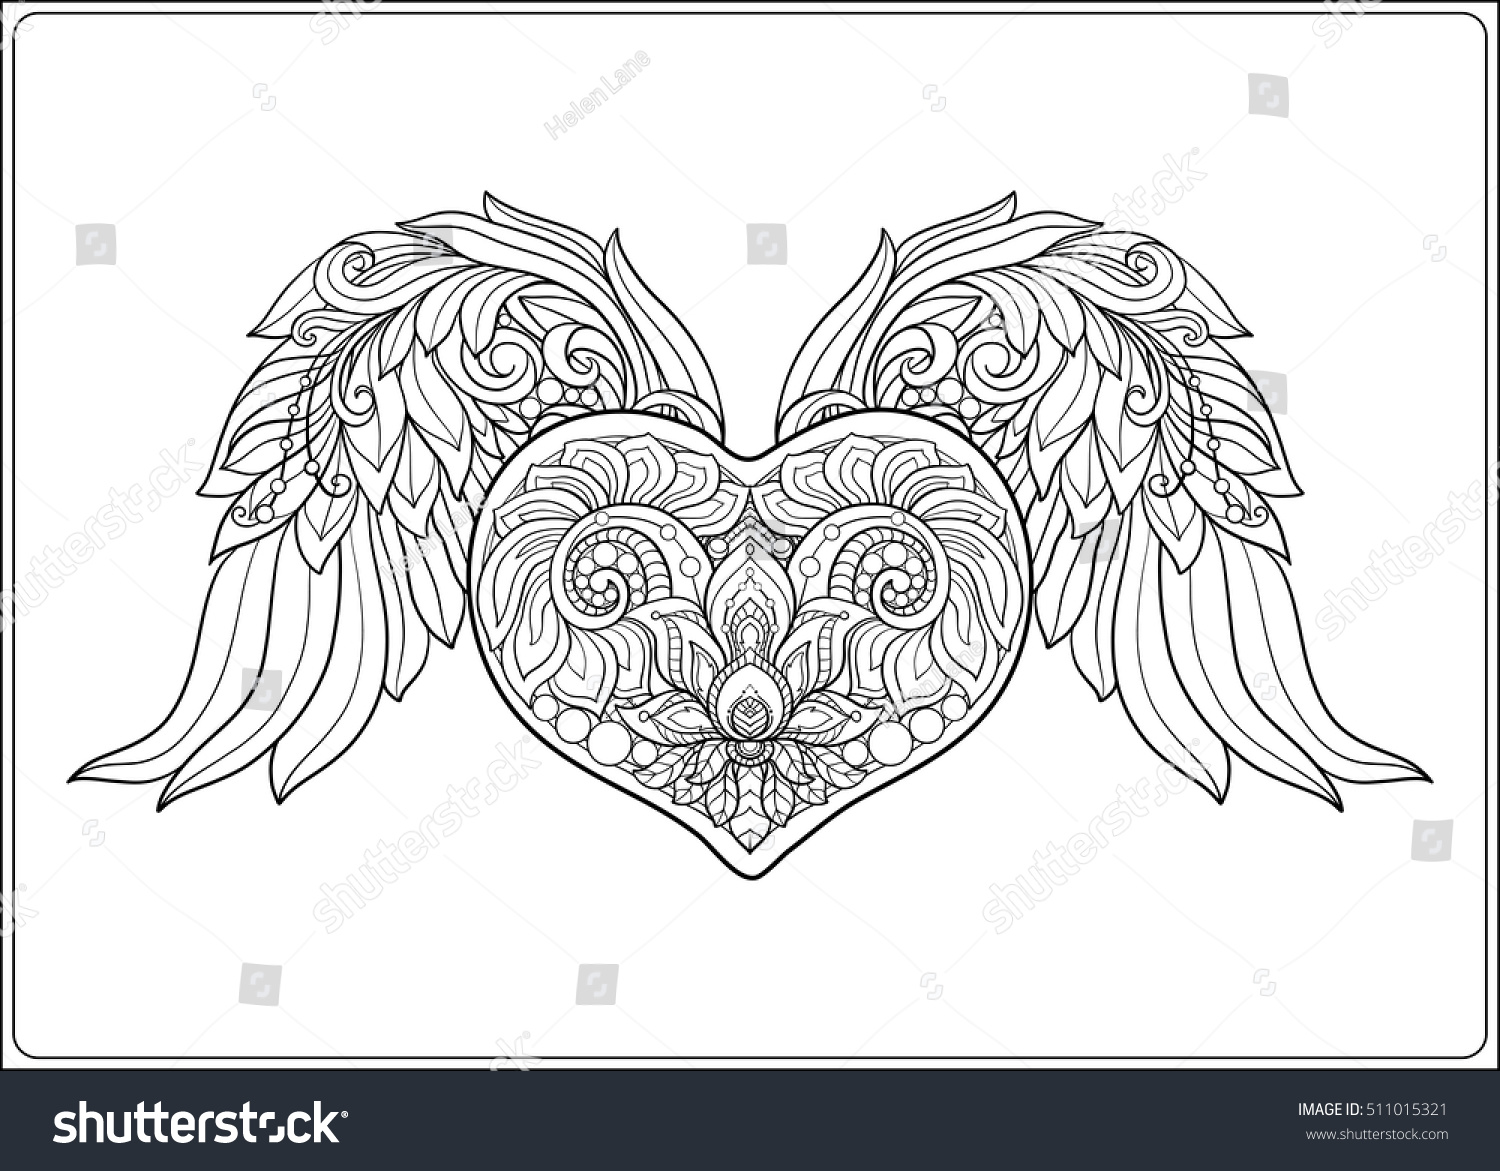 Decorative Patterned Love Heart Angel Wings Stock Vector 511015321 ...